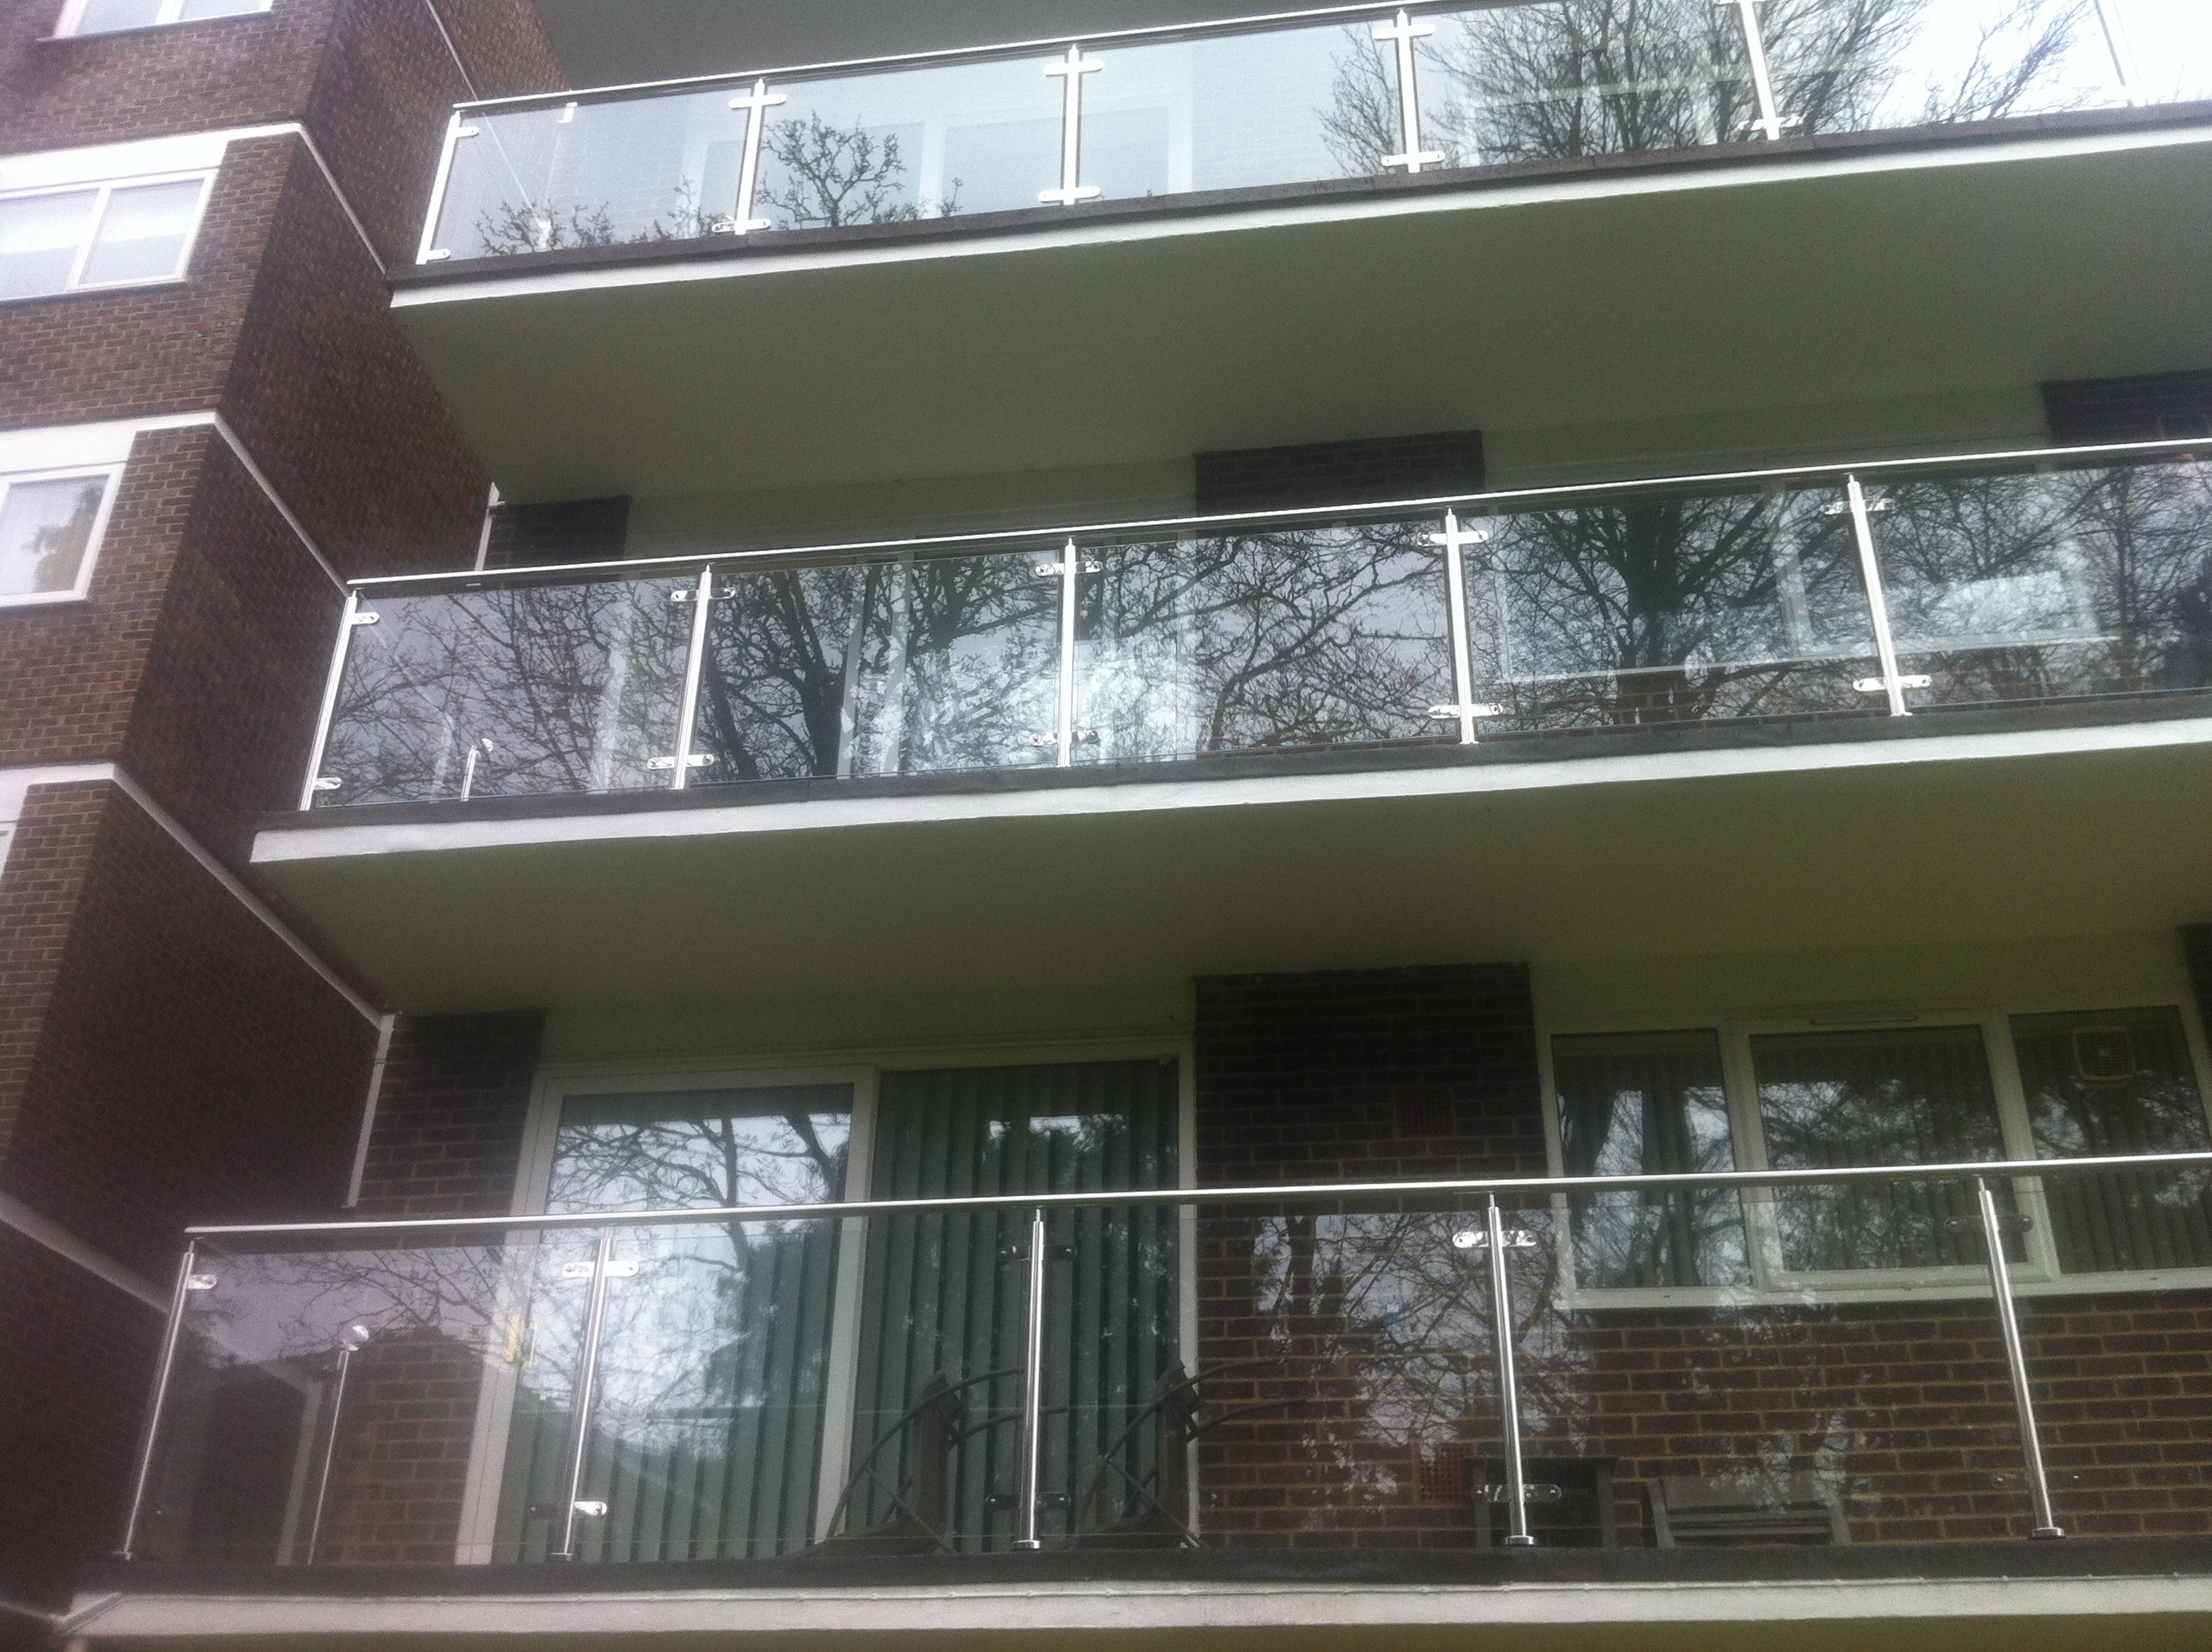 New stainless steel balustrades with glass infills to a large block of flats in Dorset.